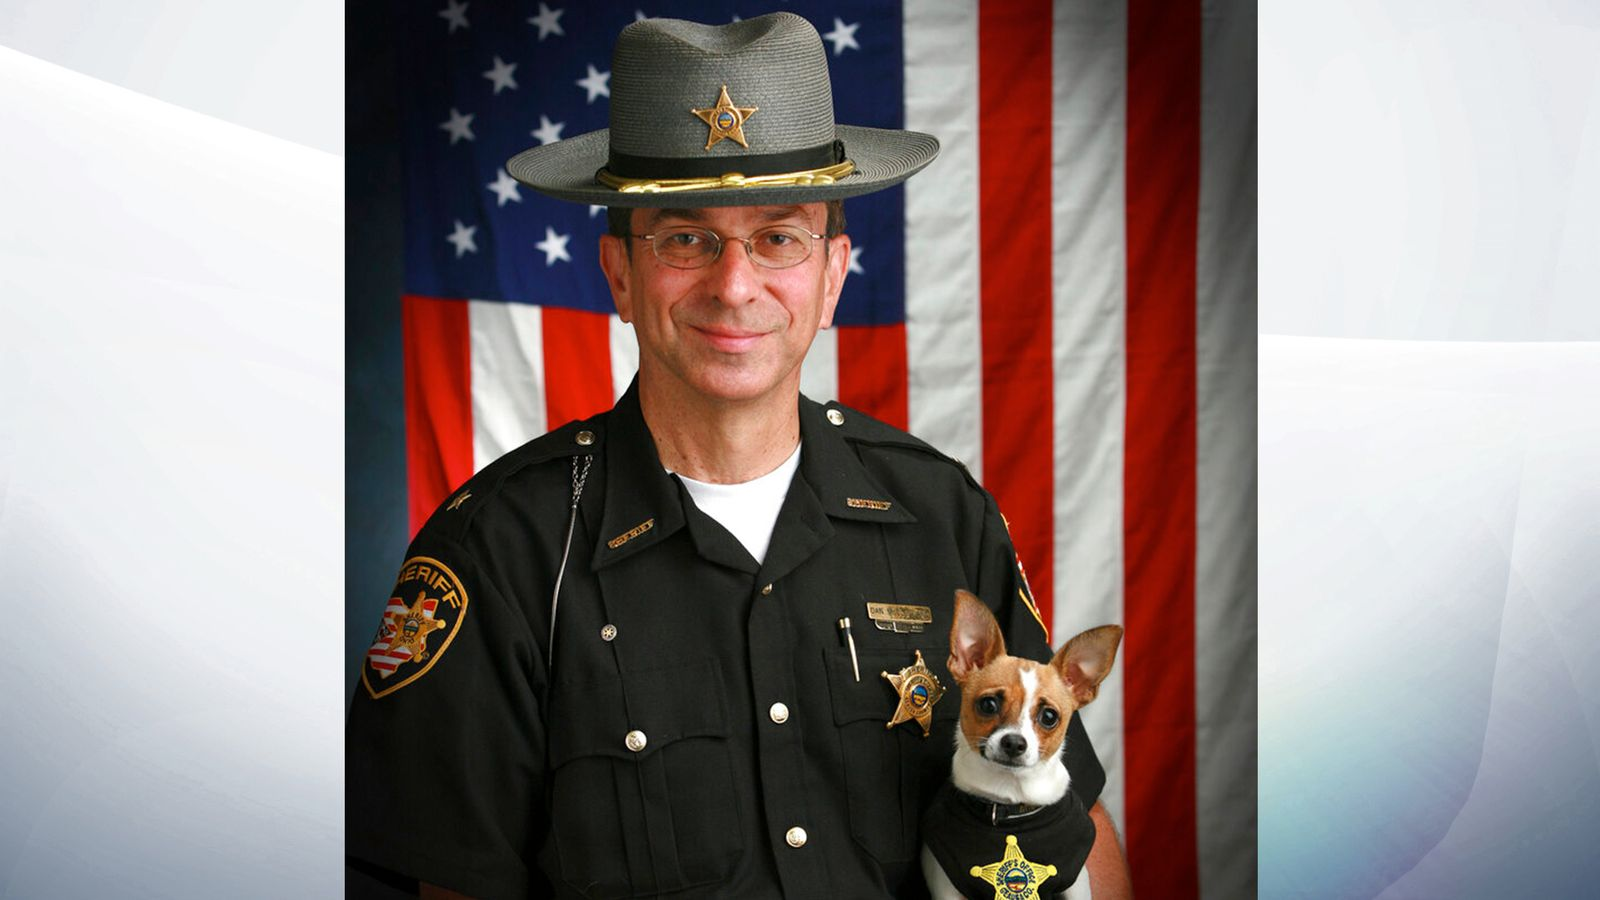 World's smallest police dog dies hours after the sheriff she served beside